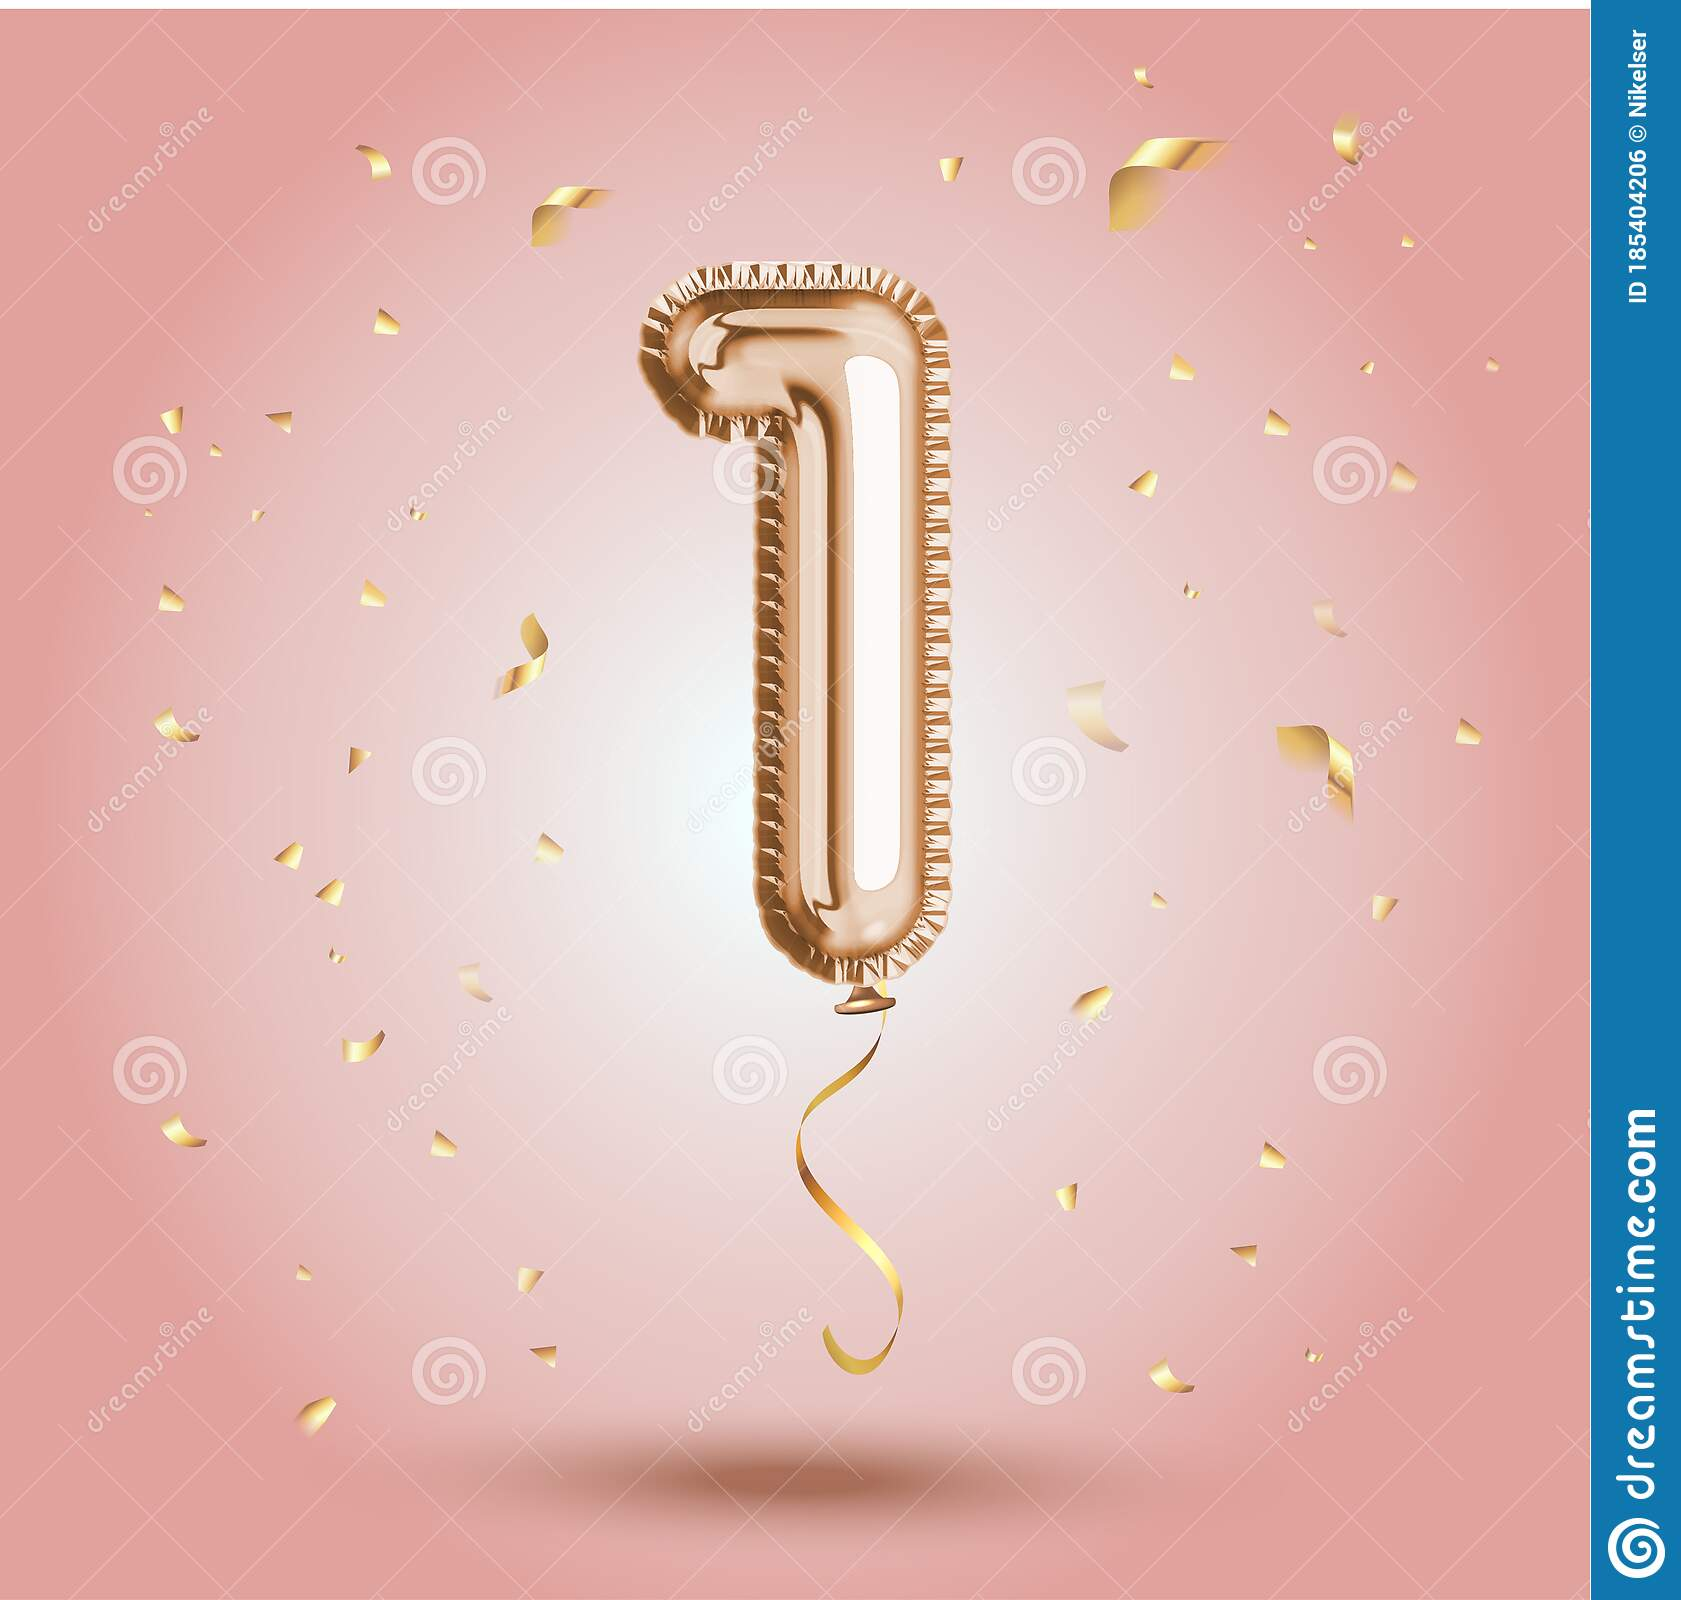 Happy One Year Anniversary Letter from thumbs.dreamstime.com